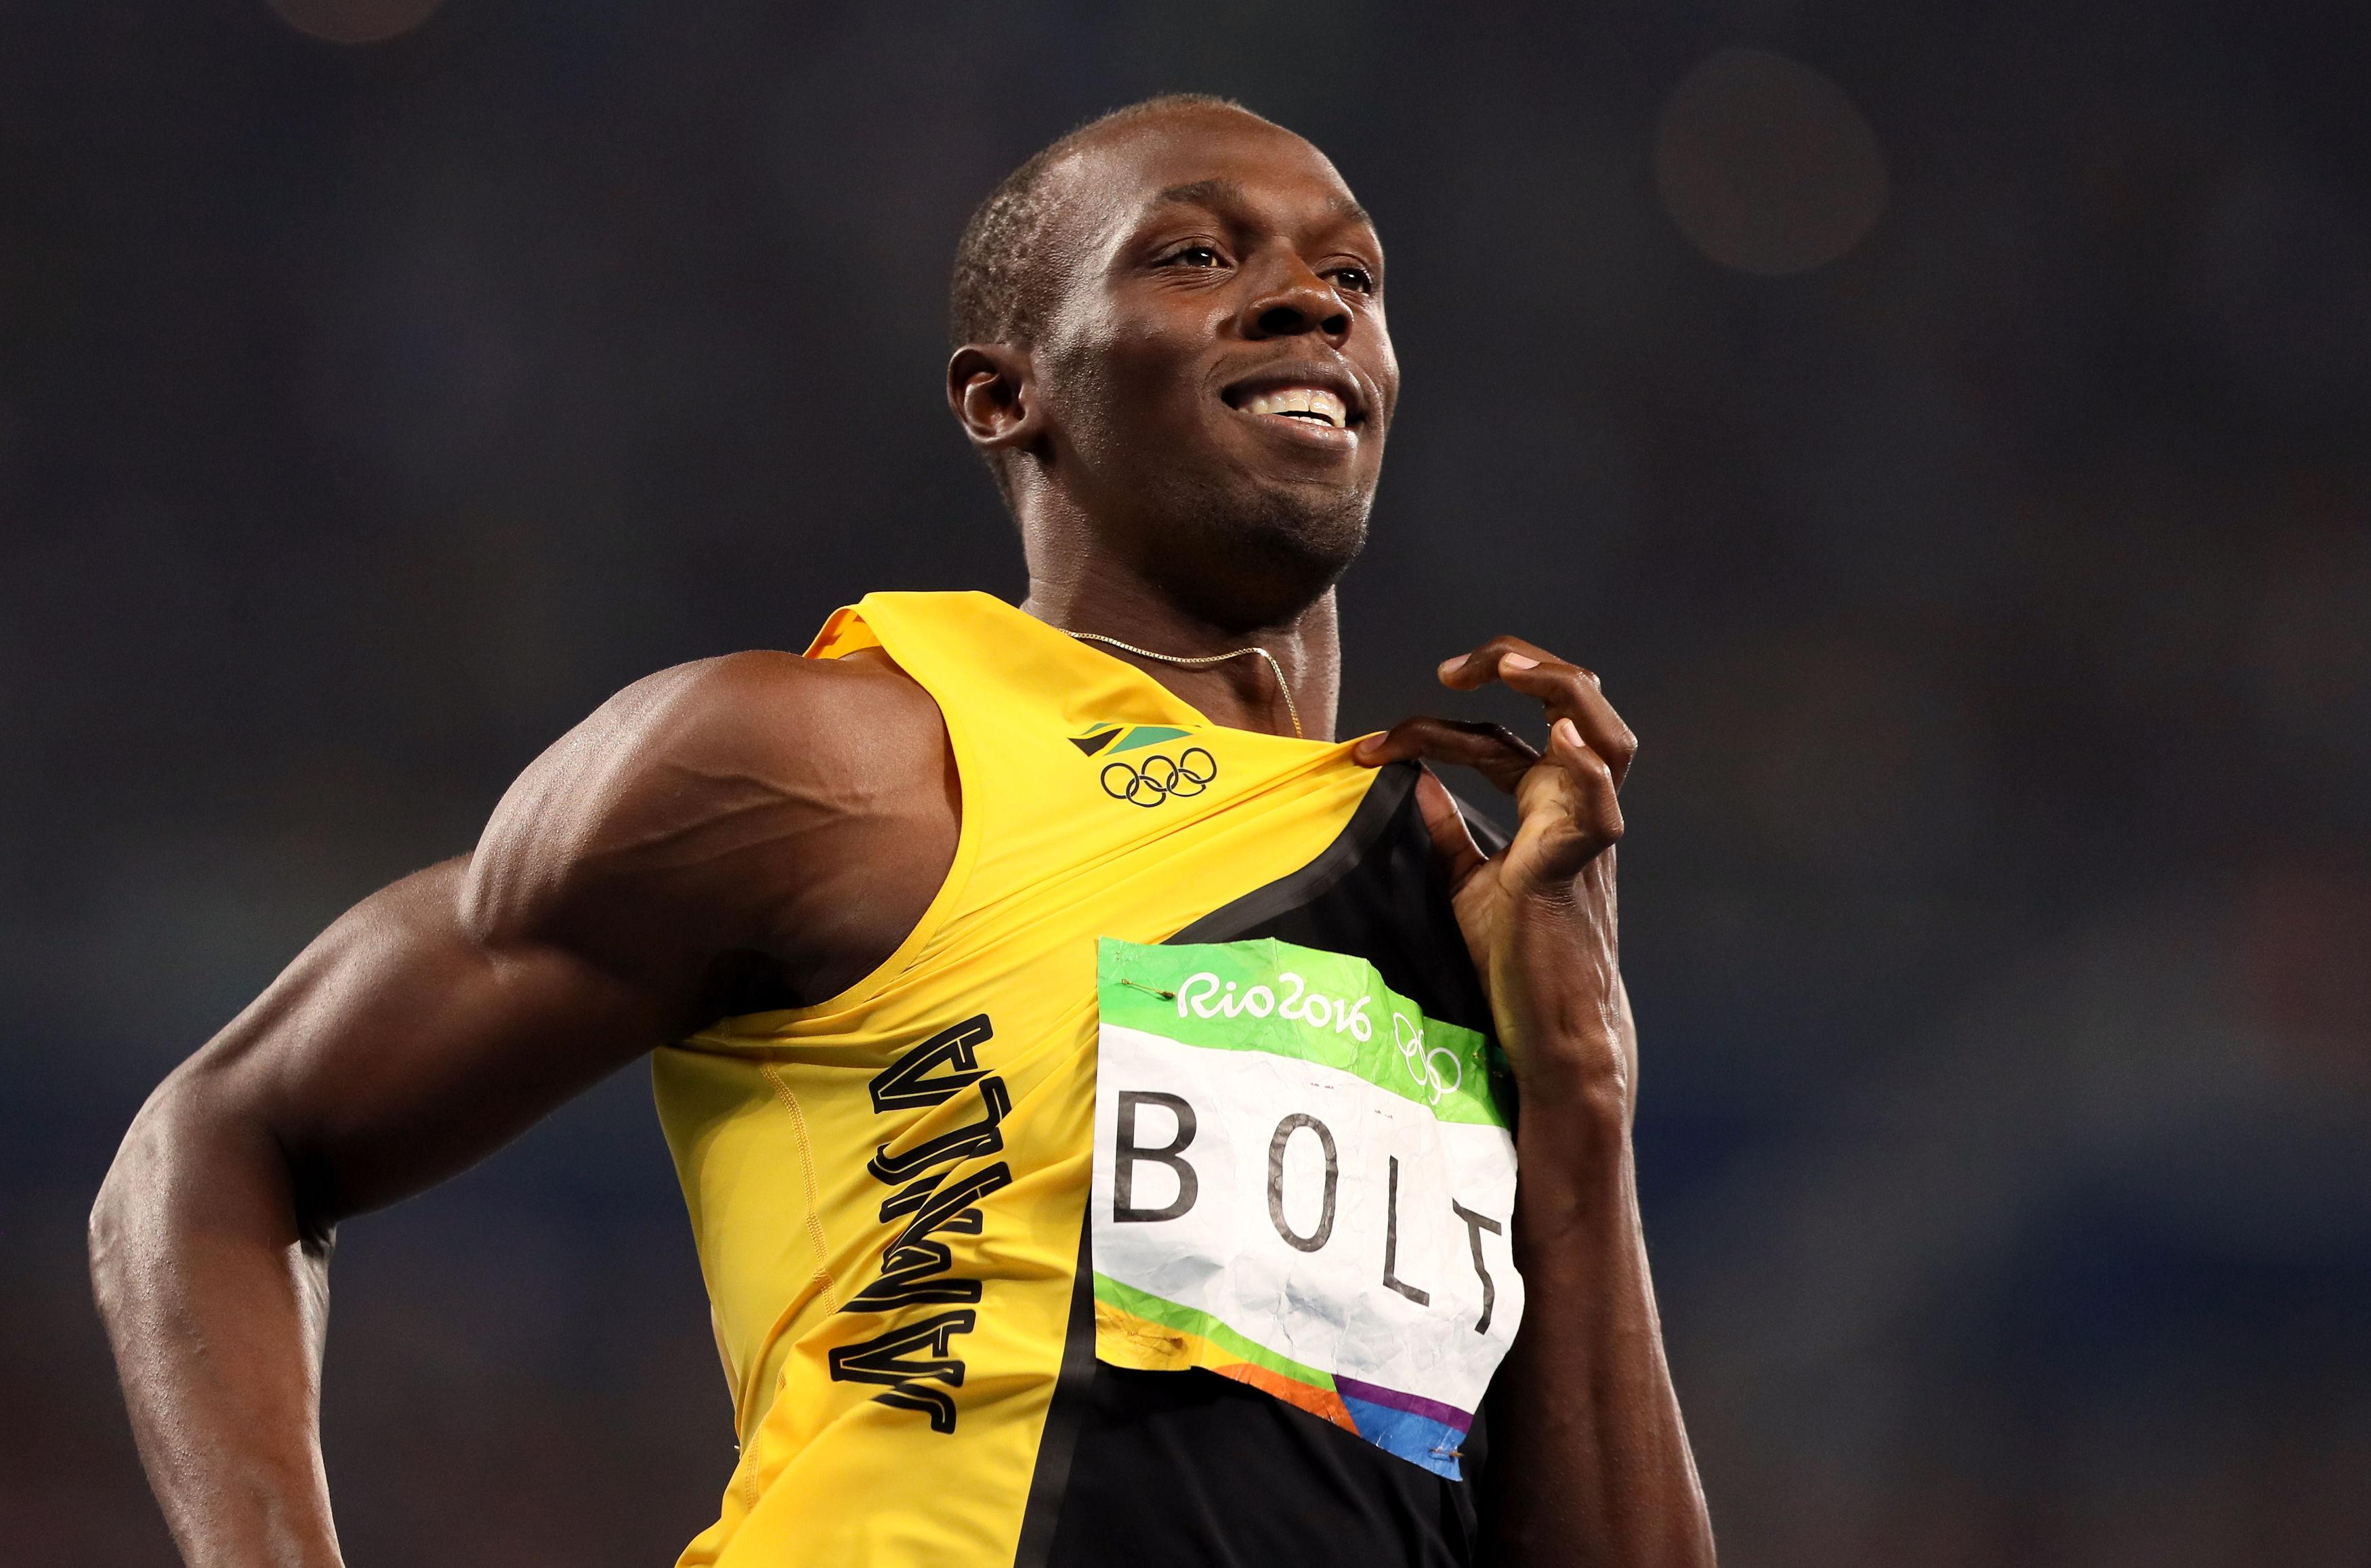 Usain Bolt is the fastest man of all time with a world record 9.58 seconds in the 100 metres